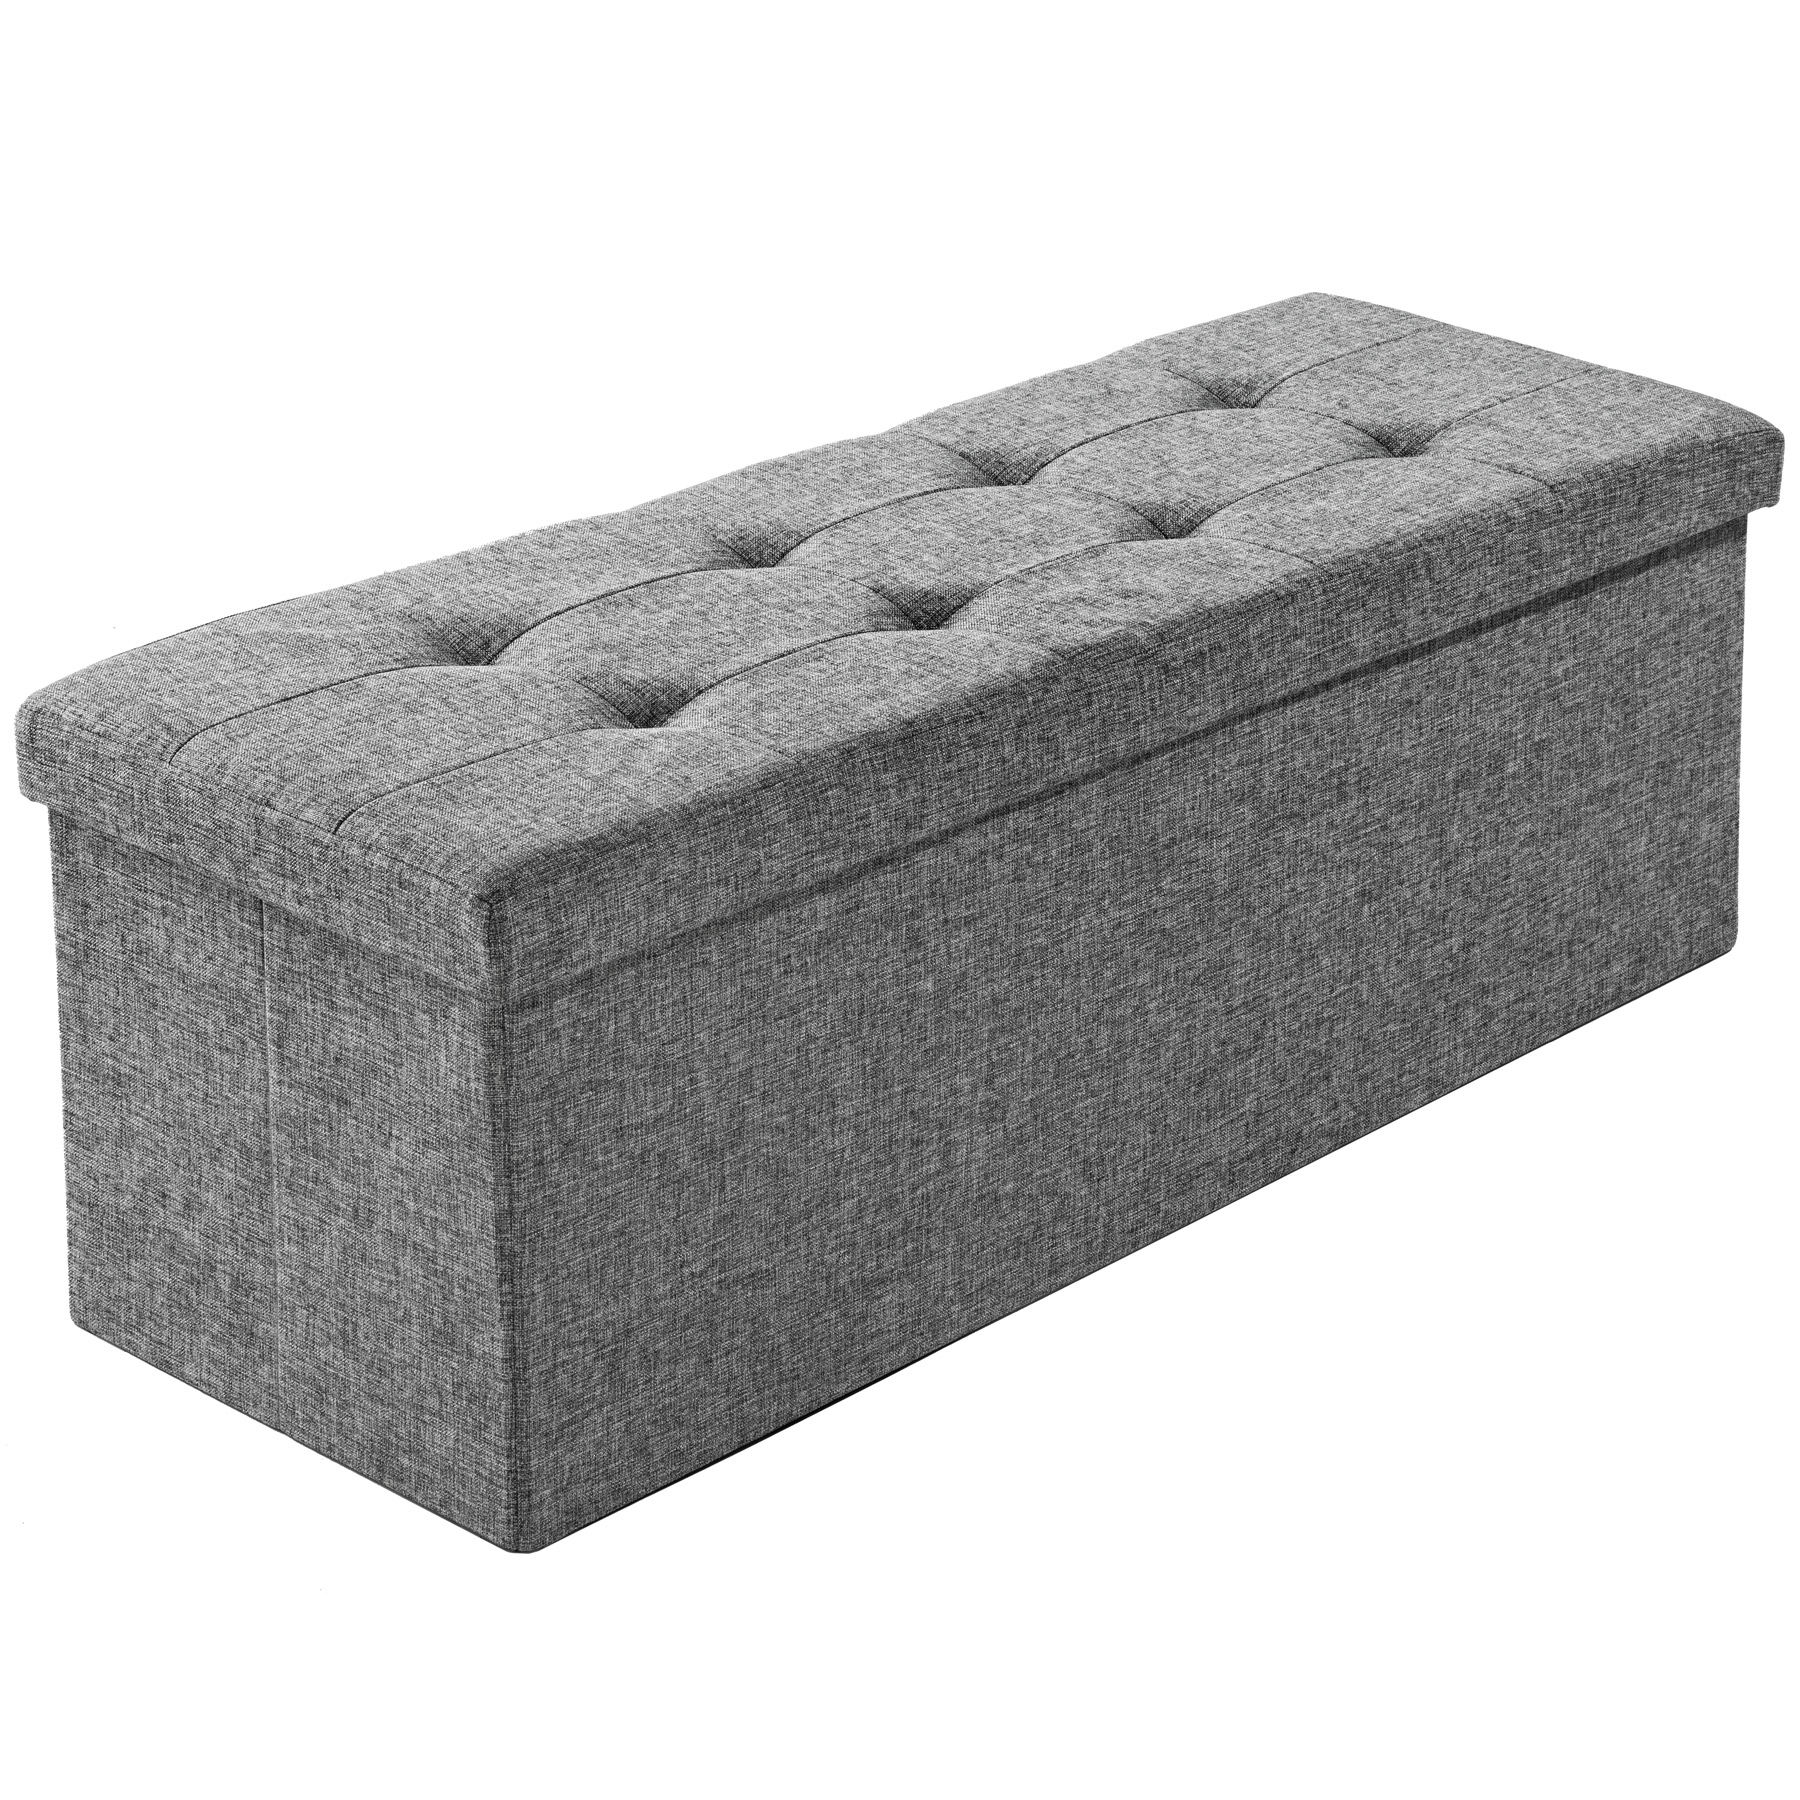 folding seat bench storage space box chair cube footstool. Black Bedroom Furniture Sets. Home Design Ideas